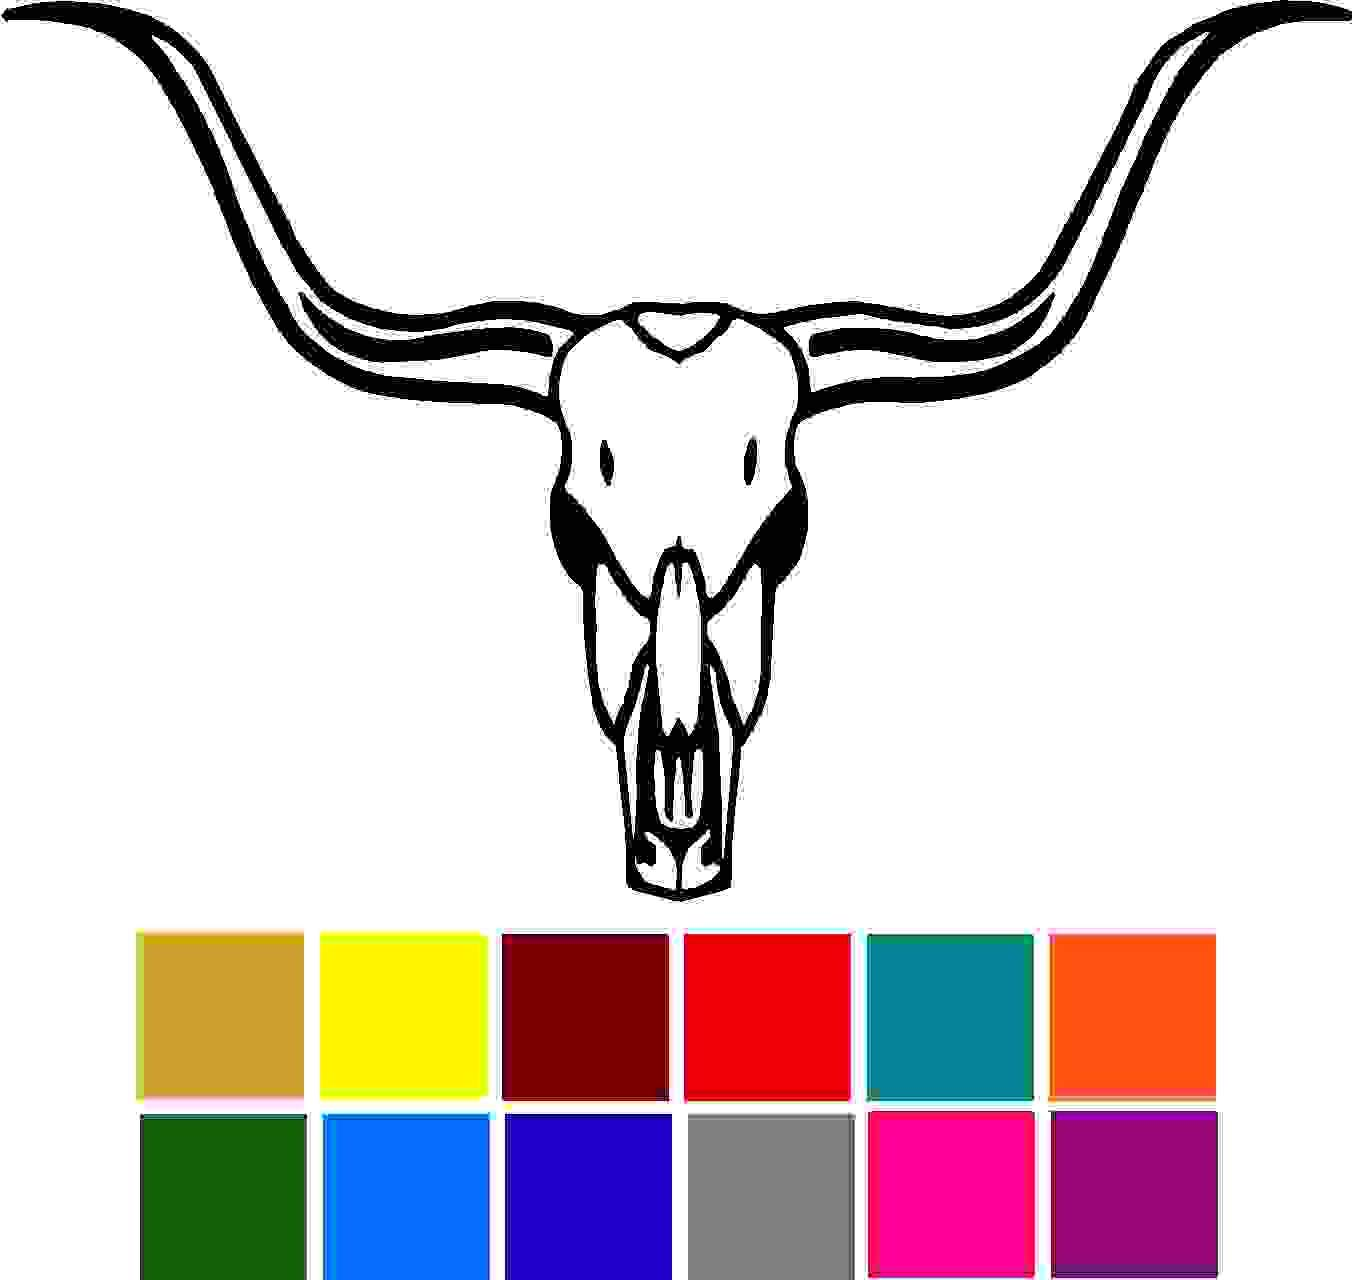 Bull Skull Large Horns Car Window Tumblers Wall Decal Sticker Vinyl Laptops Cellphones Phones Tablets Ipads Helmets Motorcycles Computer Towers V and T Gifts